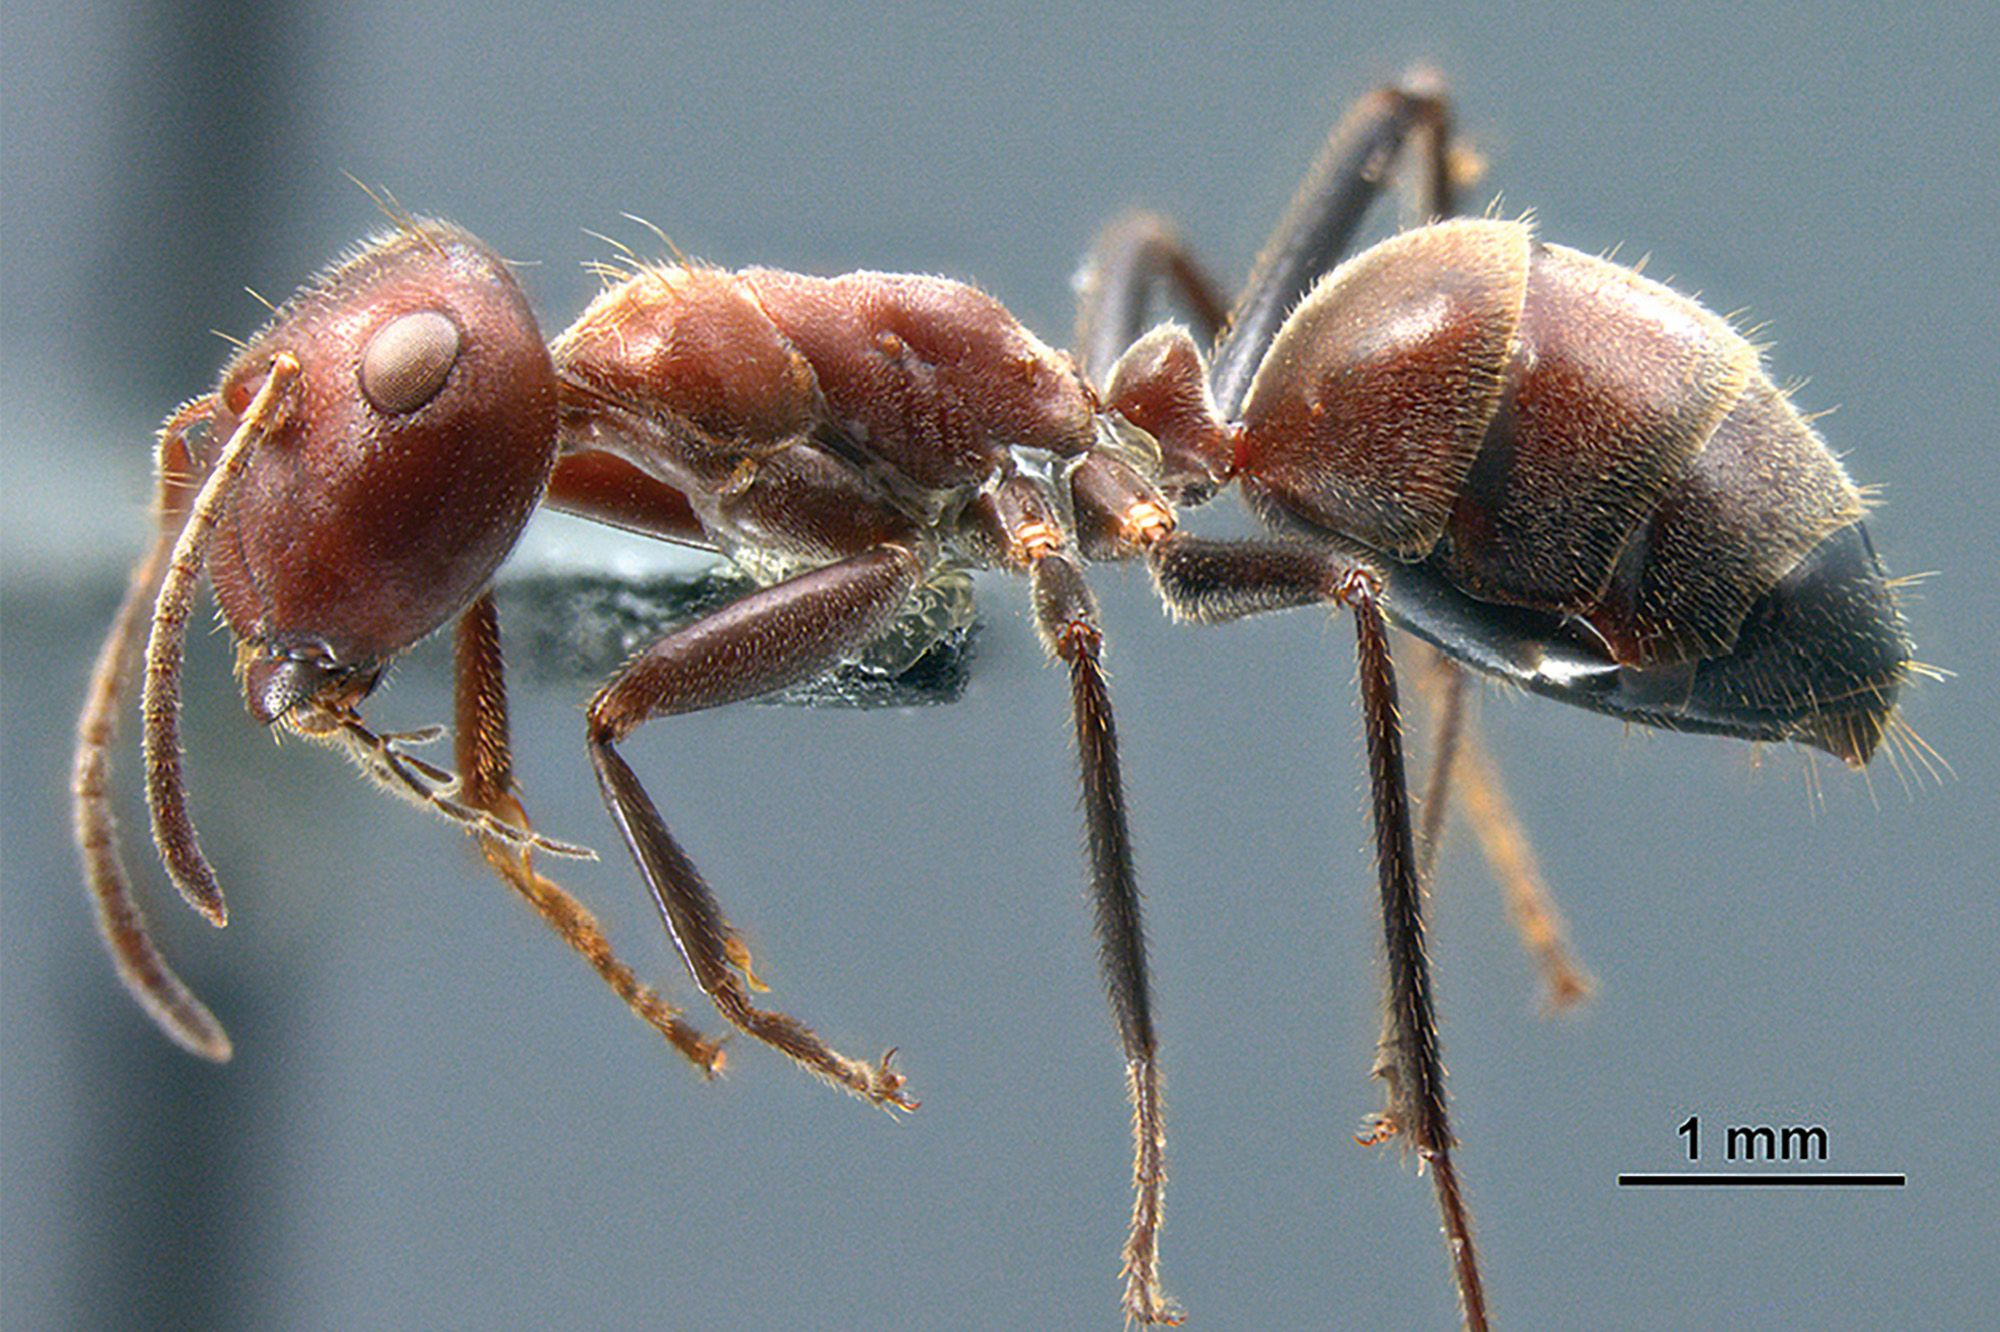 DID YOU KNOW? Meet the 'exploding ant,' which sacrifices itself for its colony